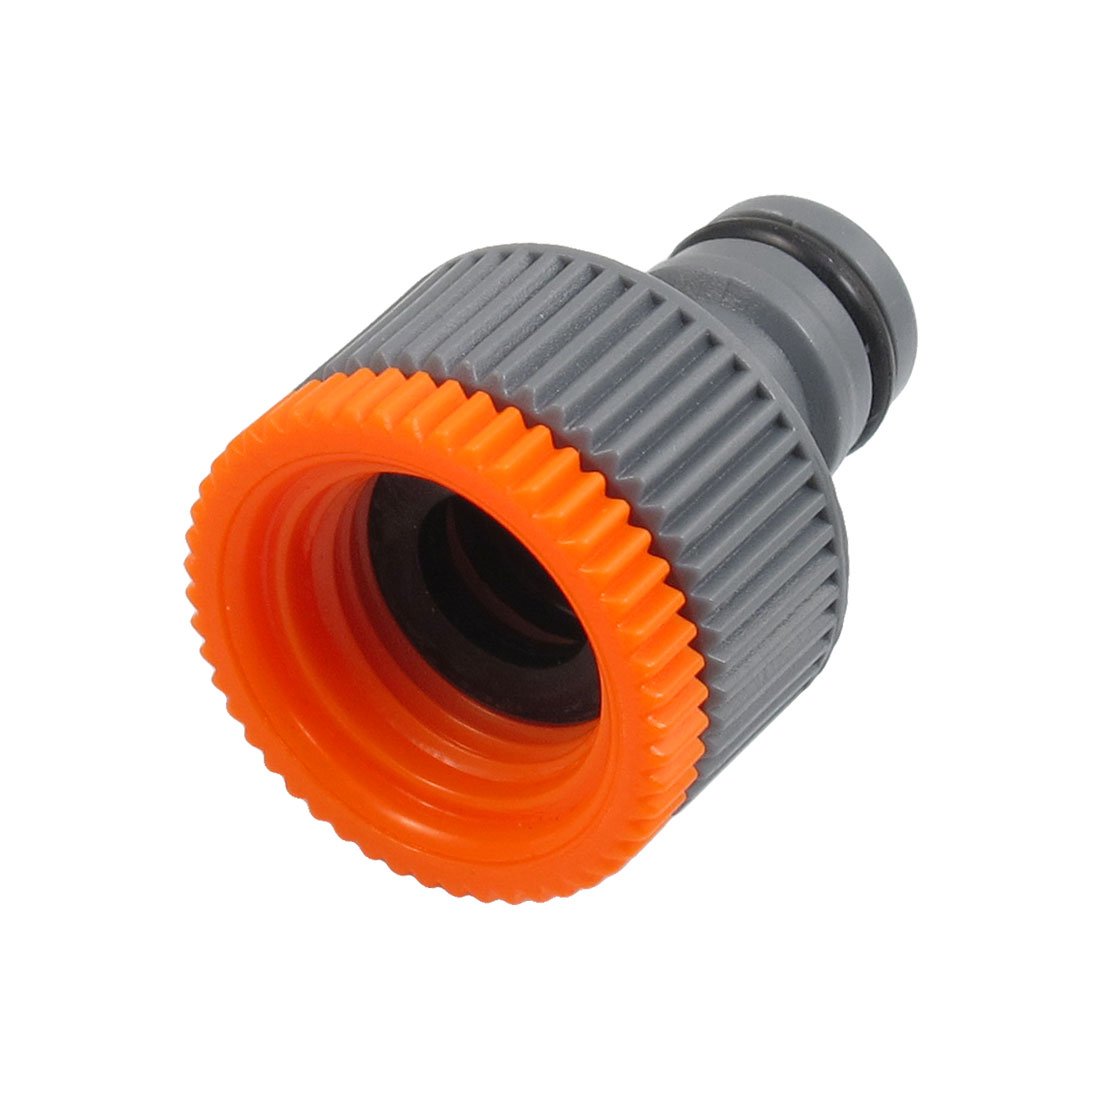 Gray Orange Plastic Quick Coupler Disconnect 19mm Thread for 16mm Connector